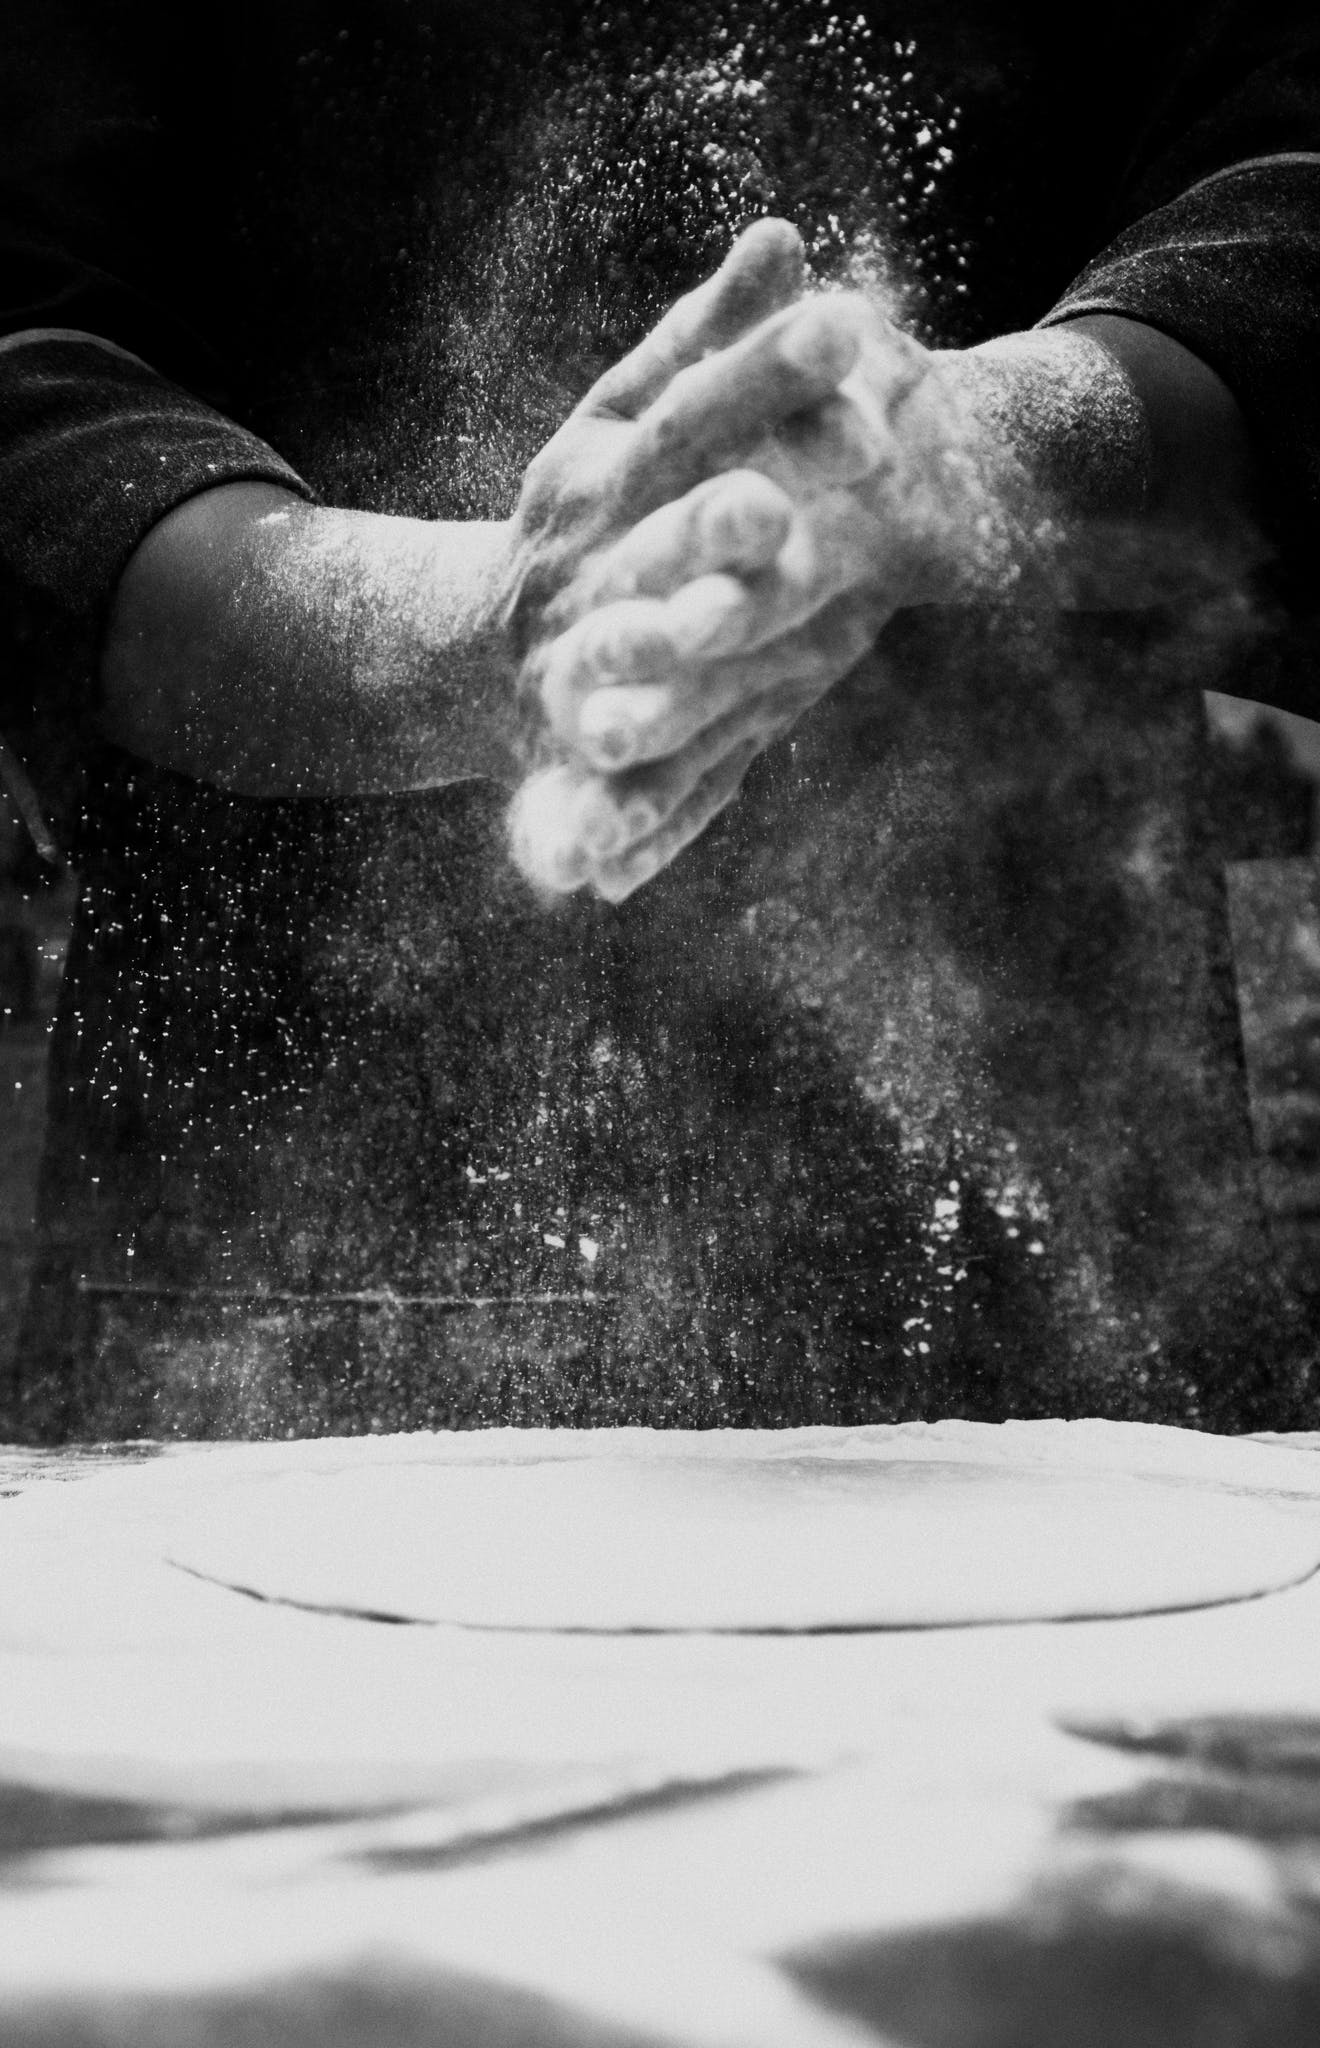 Person Spreading Flour